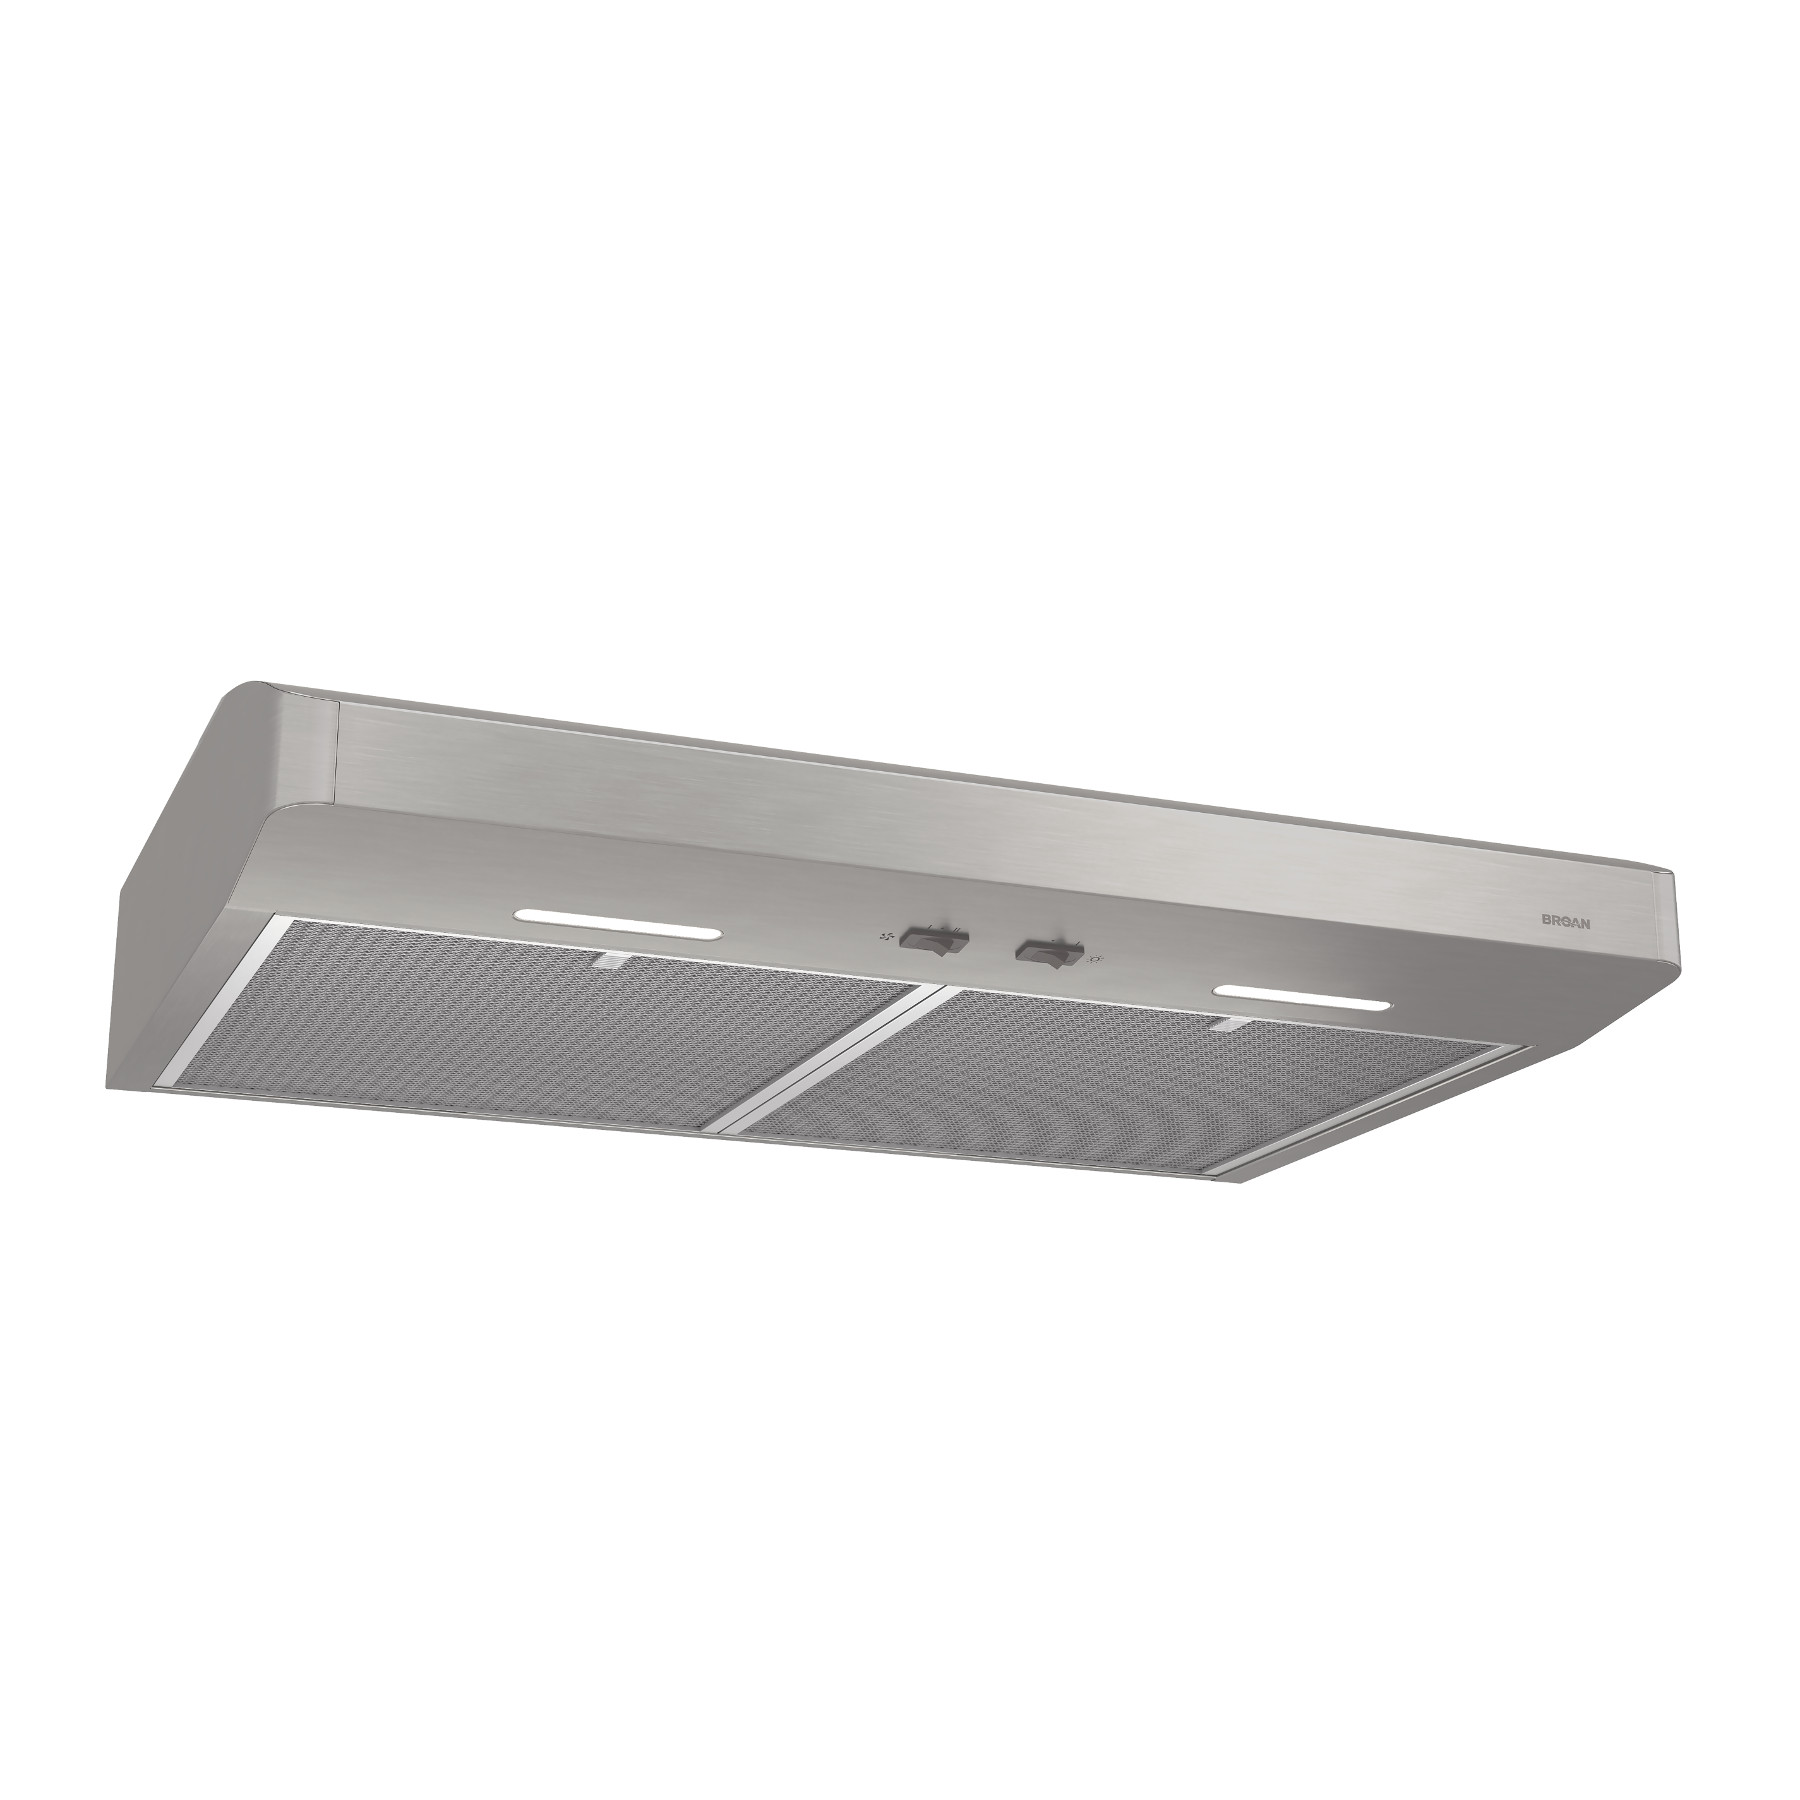 Broan® 30-Inch Convertible Under-Cabinet Range Hood, 250 CFM, Stainless Steel